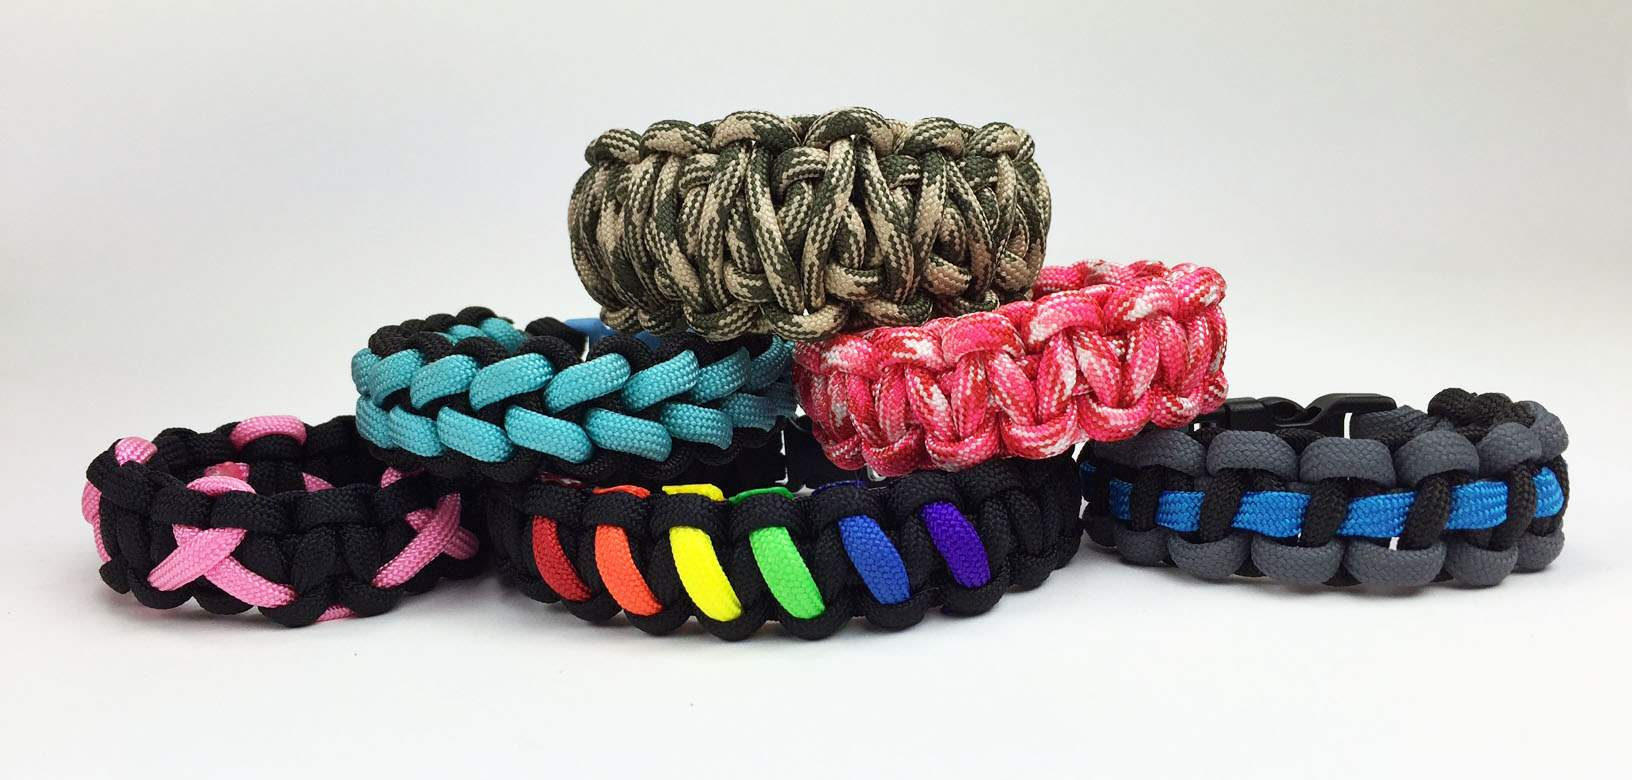 Paracord Braiding Patterns Unique Design